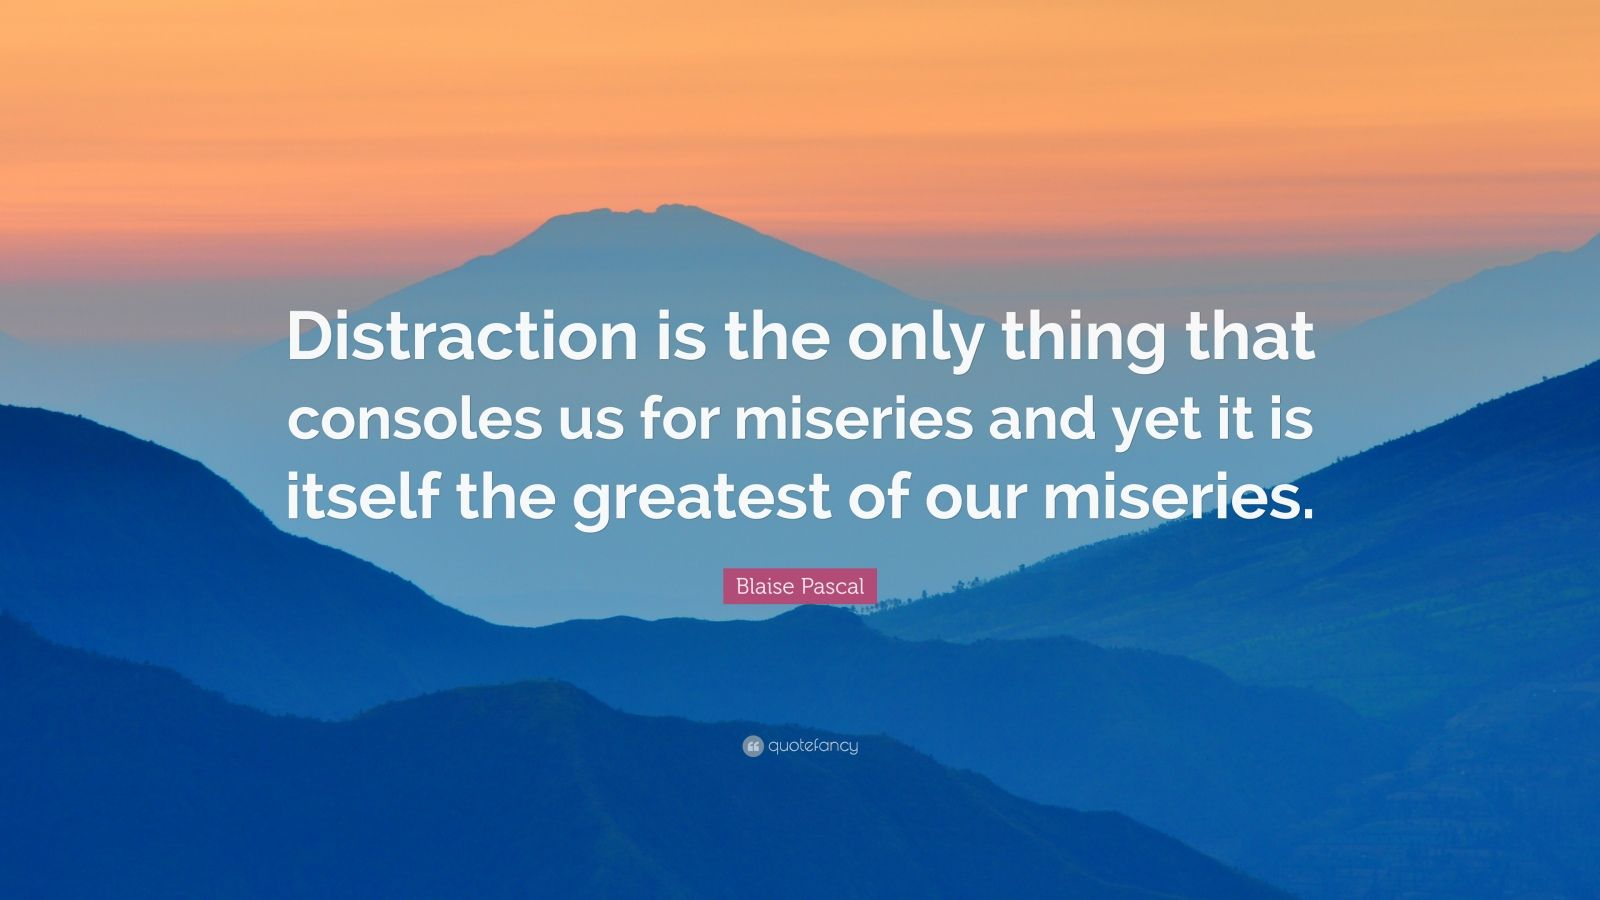 """Blaise Pascal Quote: """"Distraction is the only thing that consoles us for miseries and yet it is itself the greatest of our miseries."""""""